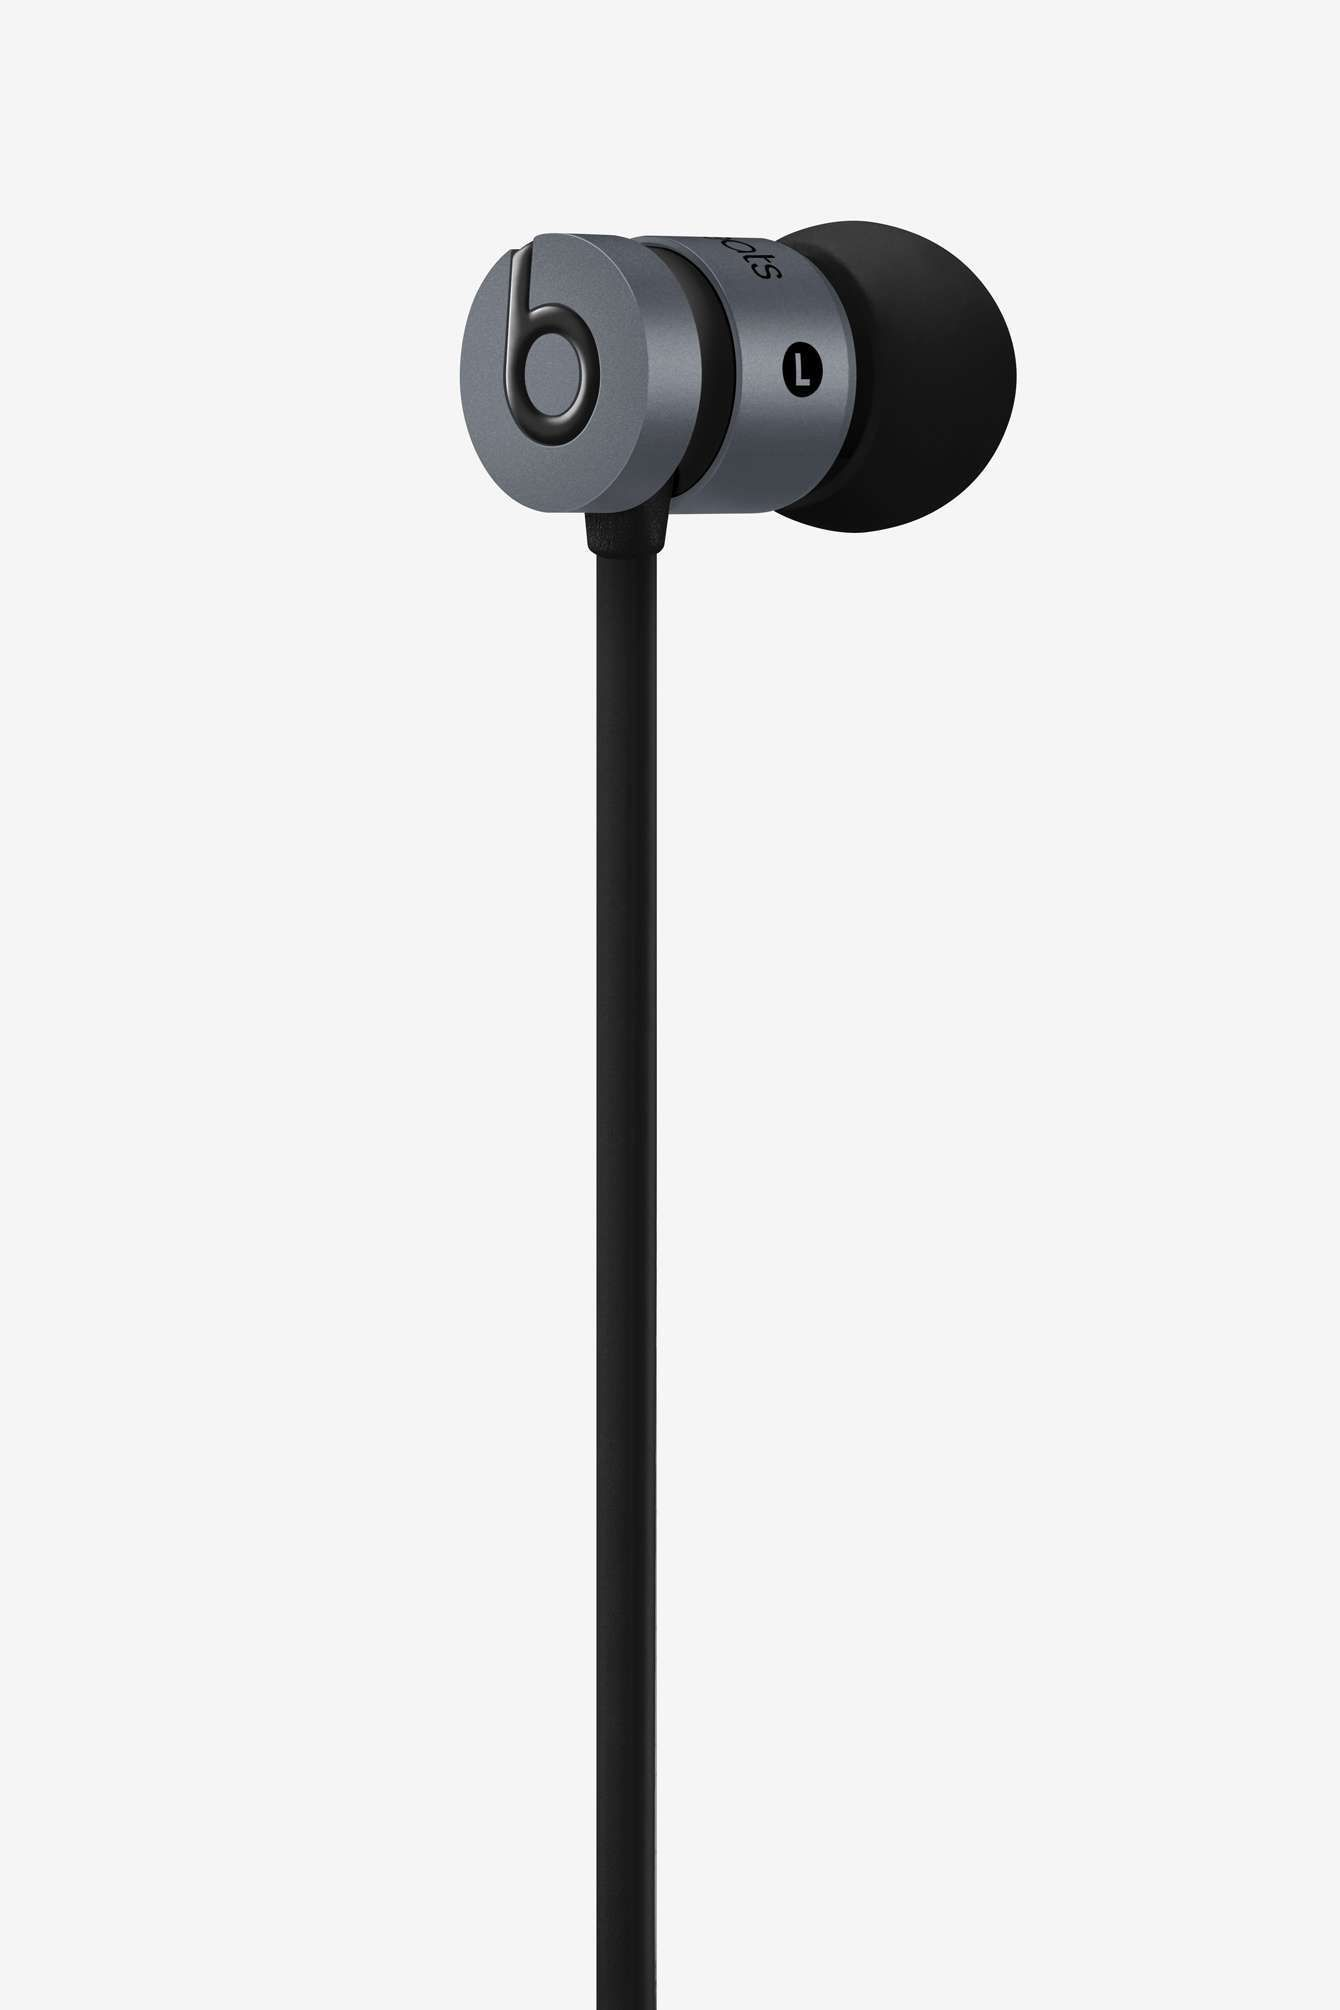 3b1412c742c42a Beats by Dre urBEATS In-Ear Headphones - Space Gray | Athletic Gear ...